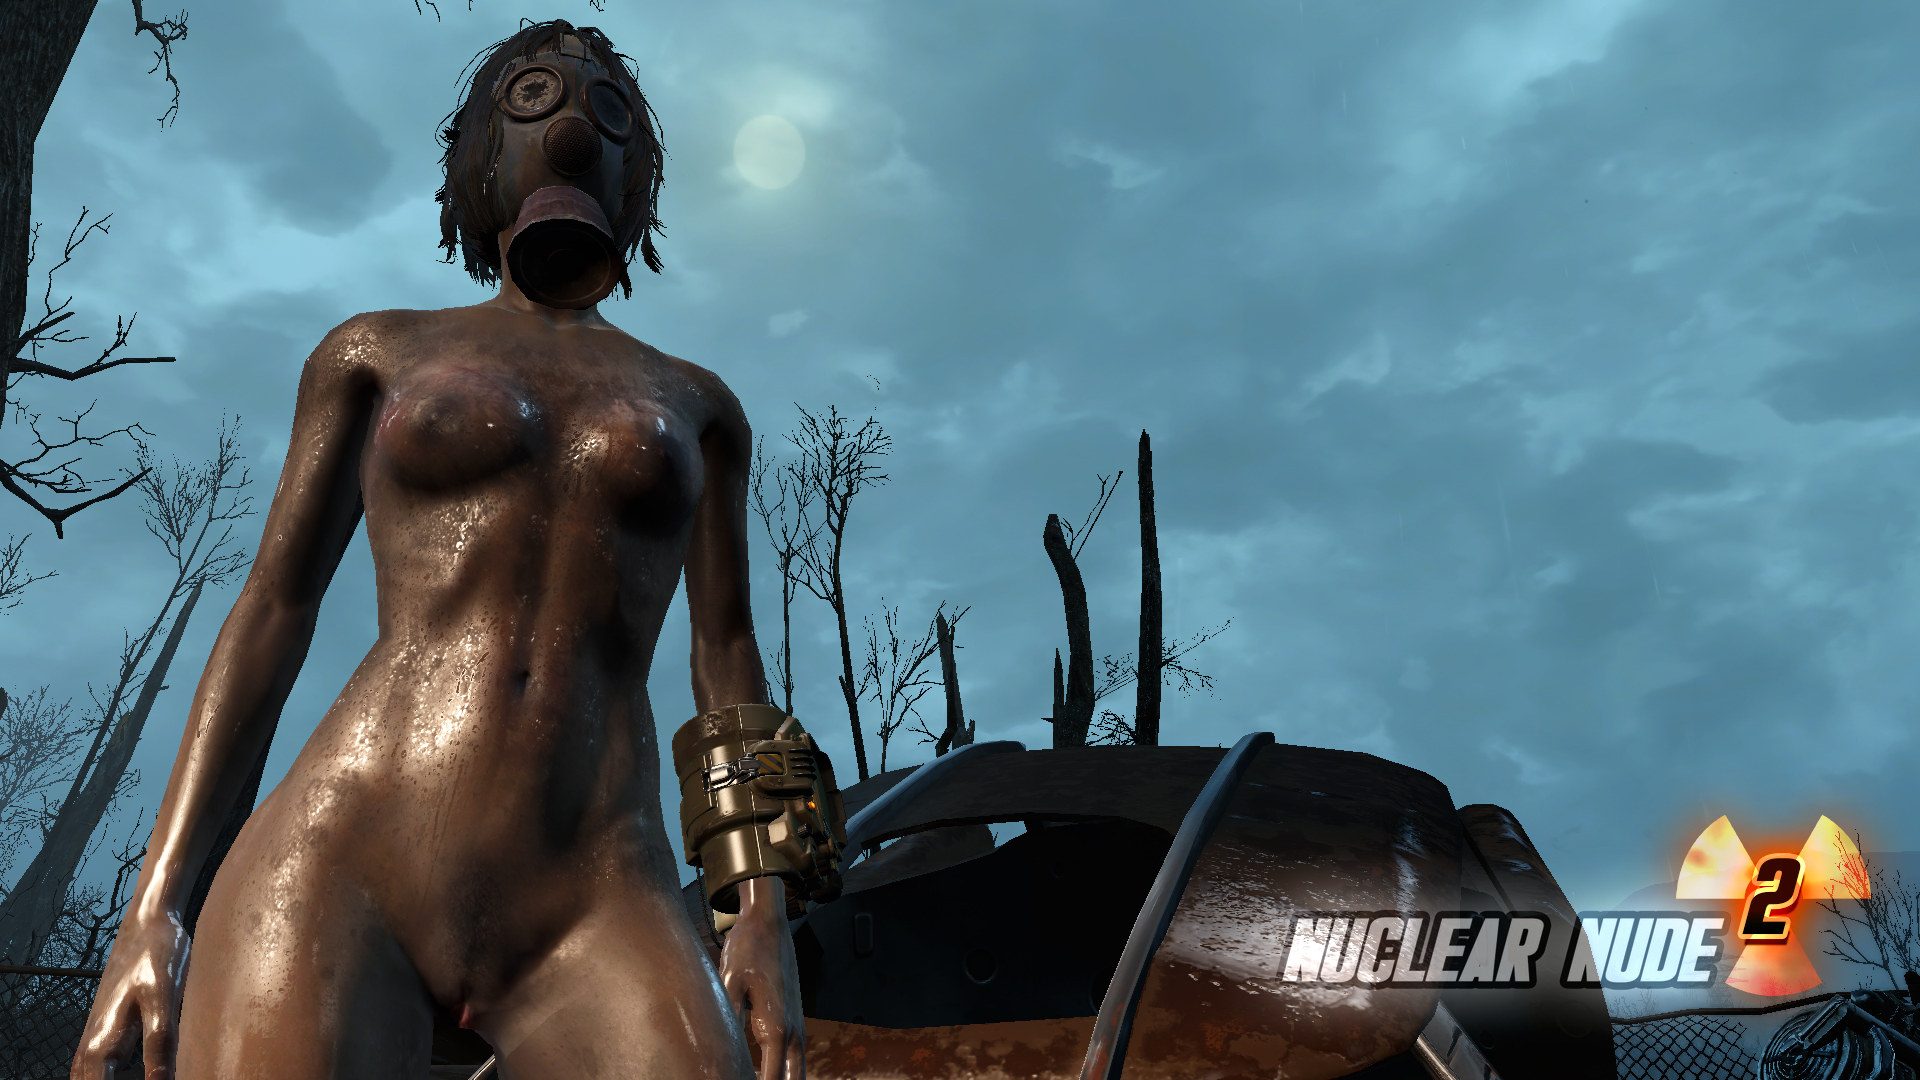 Fallout nude body replacer softcore scene